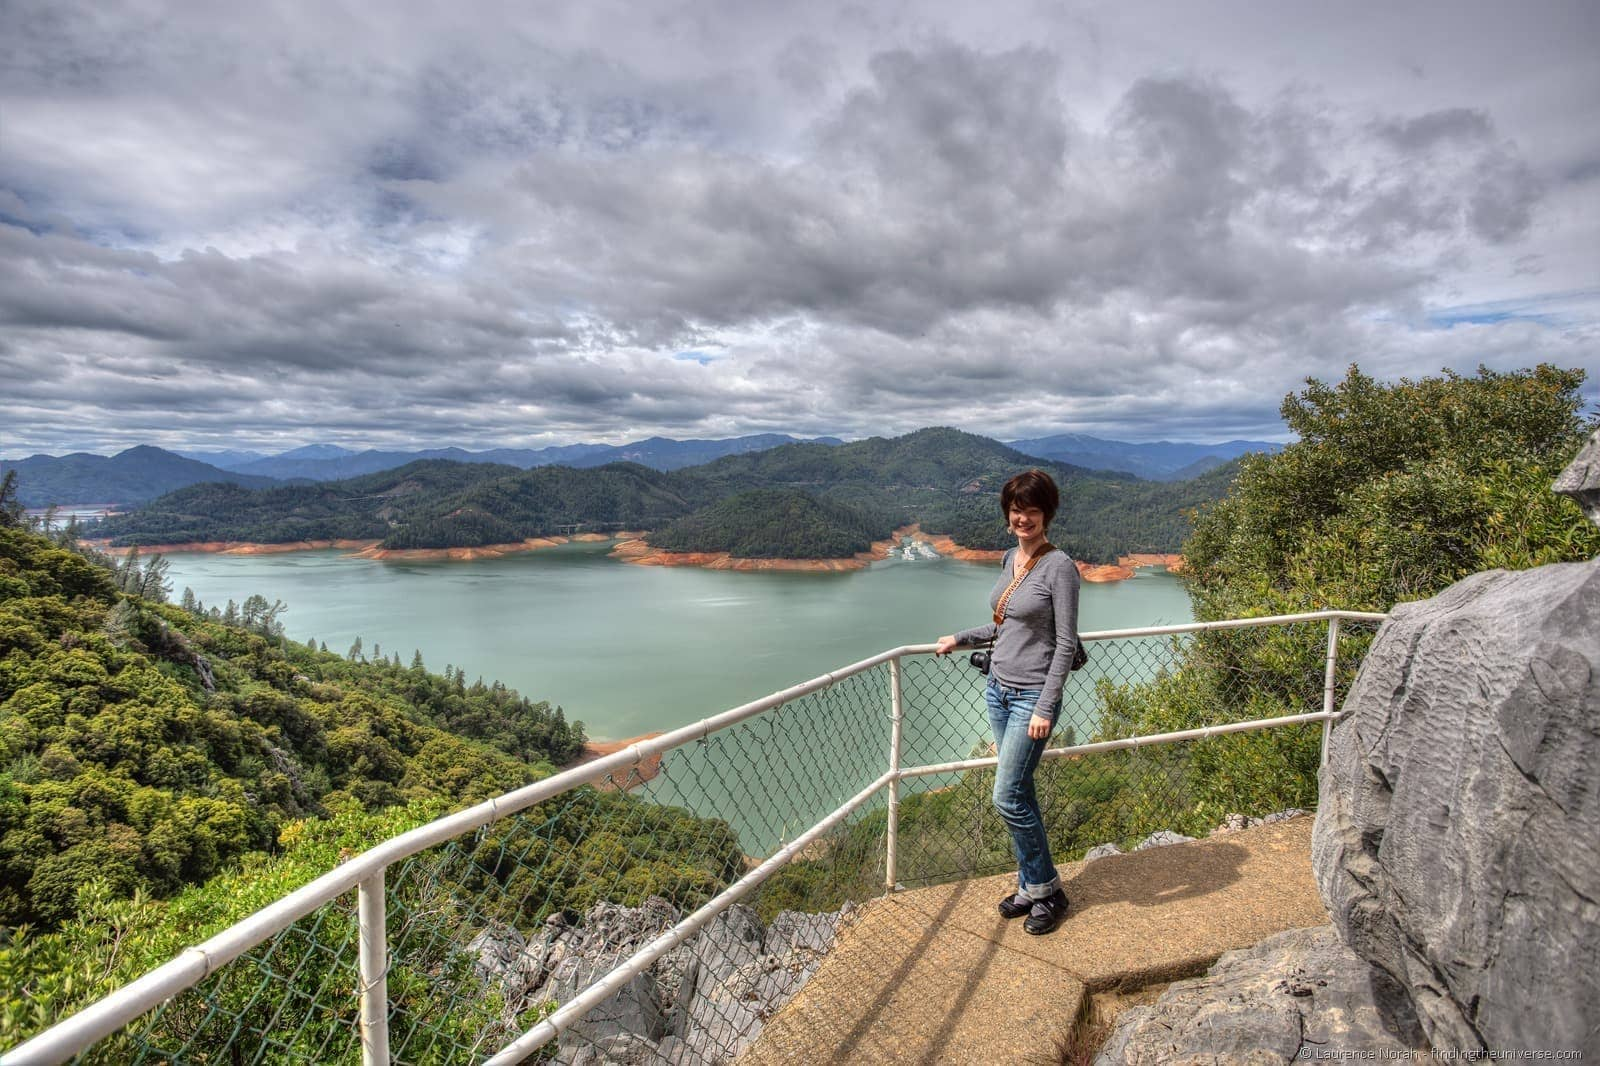 Jess above Shasta Lake, Redding, California